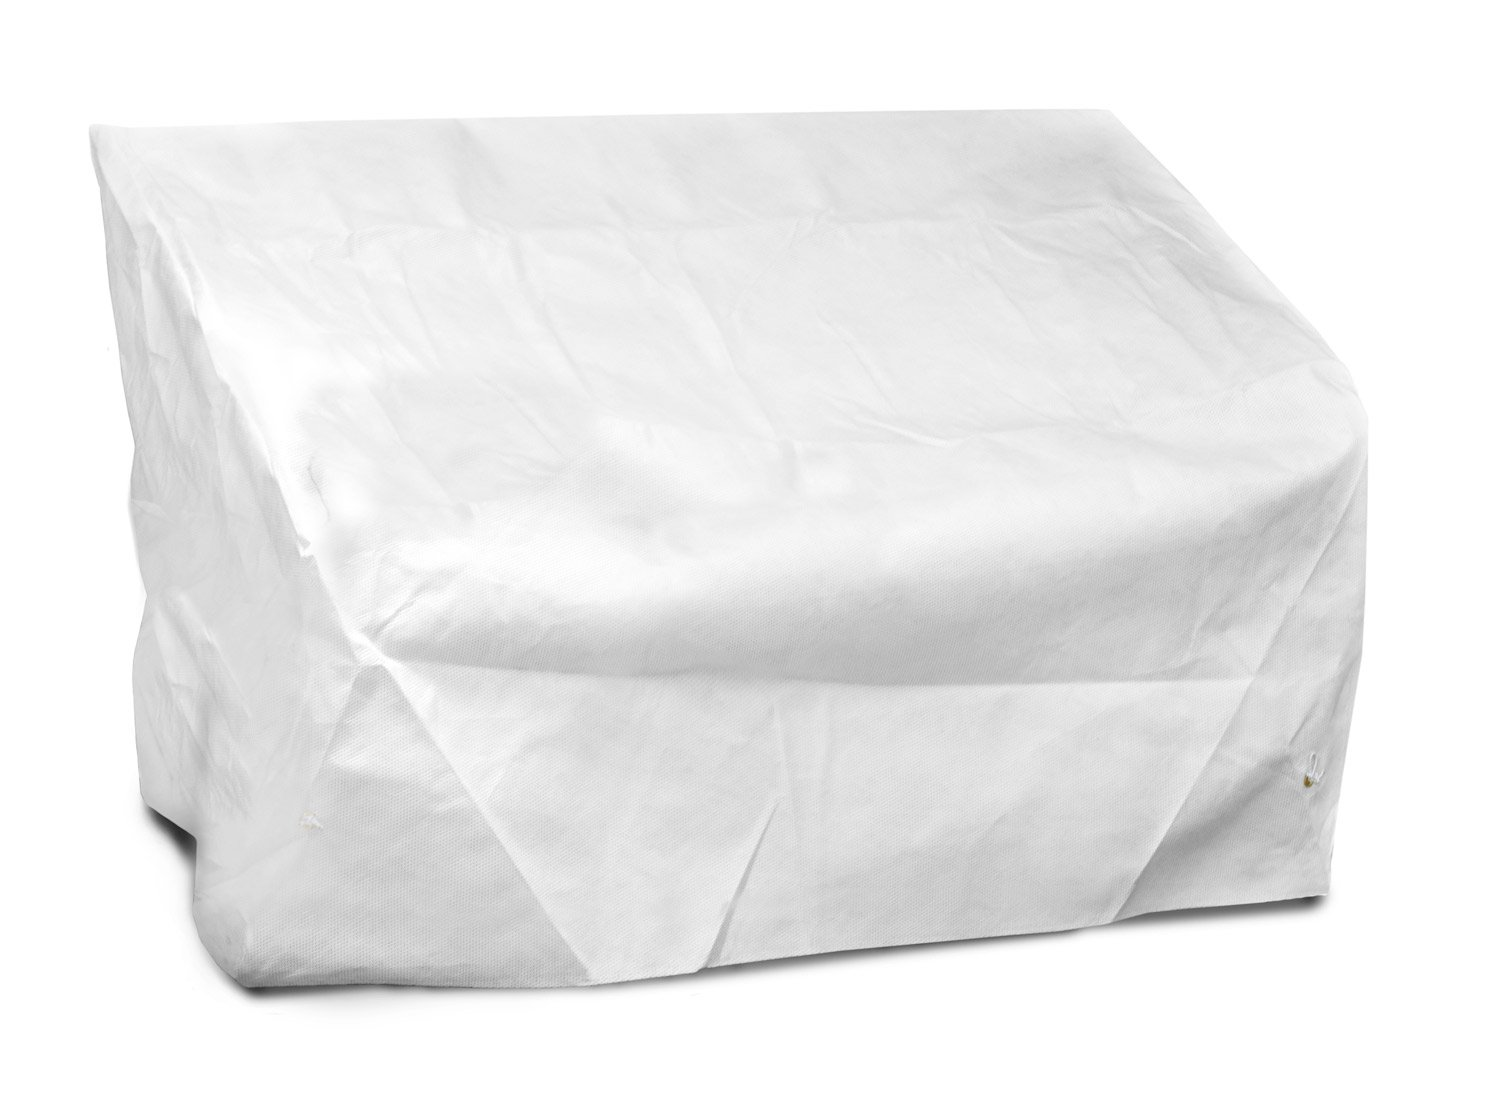 KoverRoos SupraRoos 59147 Loveseat/Sofa Cover, 51-Inch Width by 33-Inch Diameter by 33-Inch Height, White